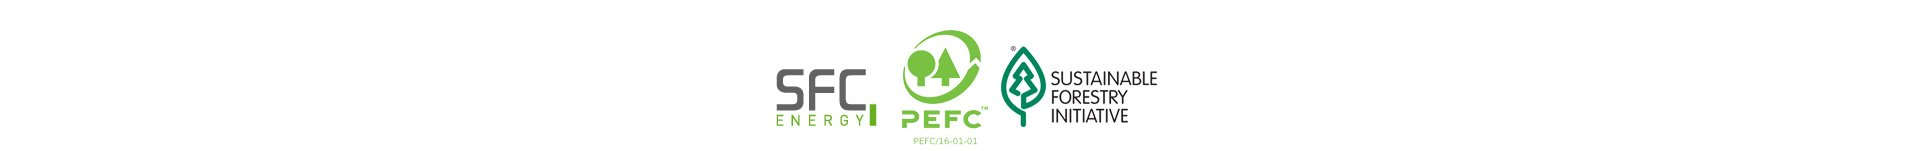 Forest-Certs-2